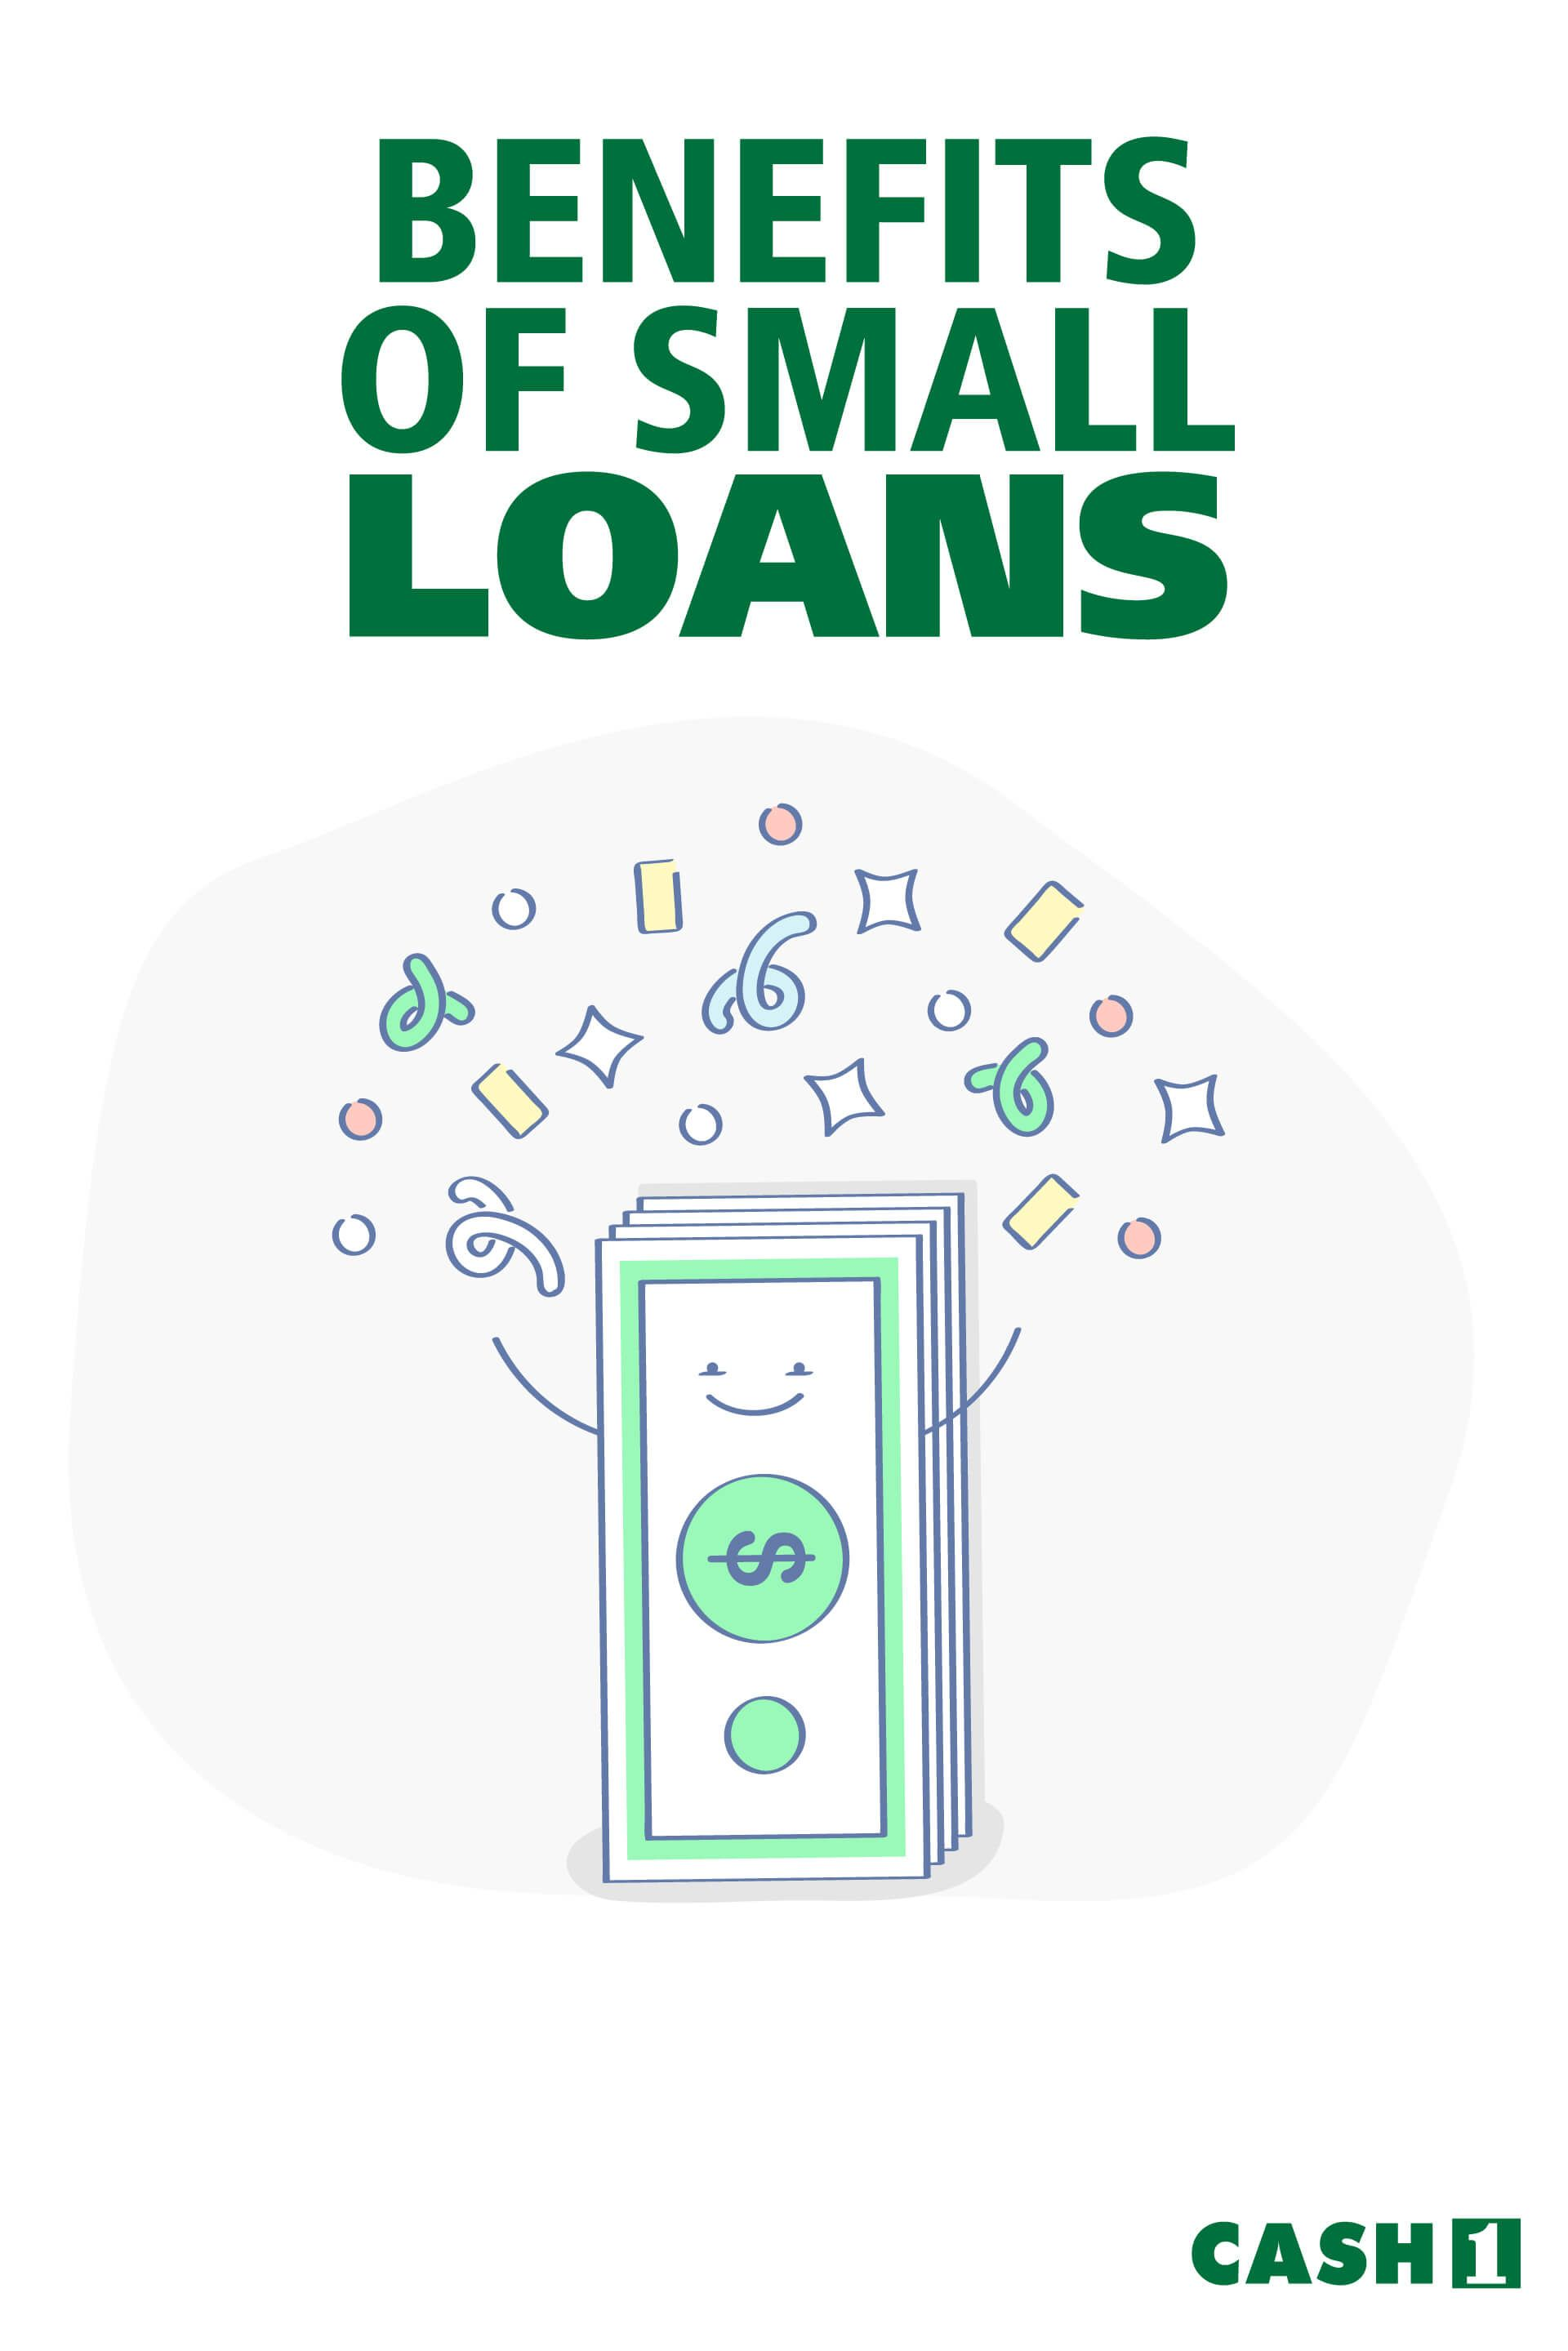 What Are The Pros And Cons Of Small Personal Loans Pros Of A Small Loan Low Soѕt Varied Uѕeѕ Personal Loans Personal Loans Debt Payoff Loans For Bad Credit